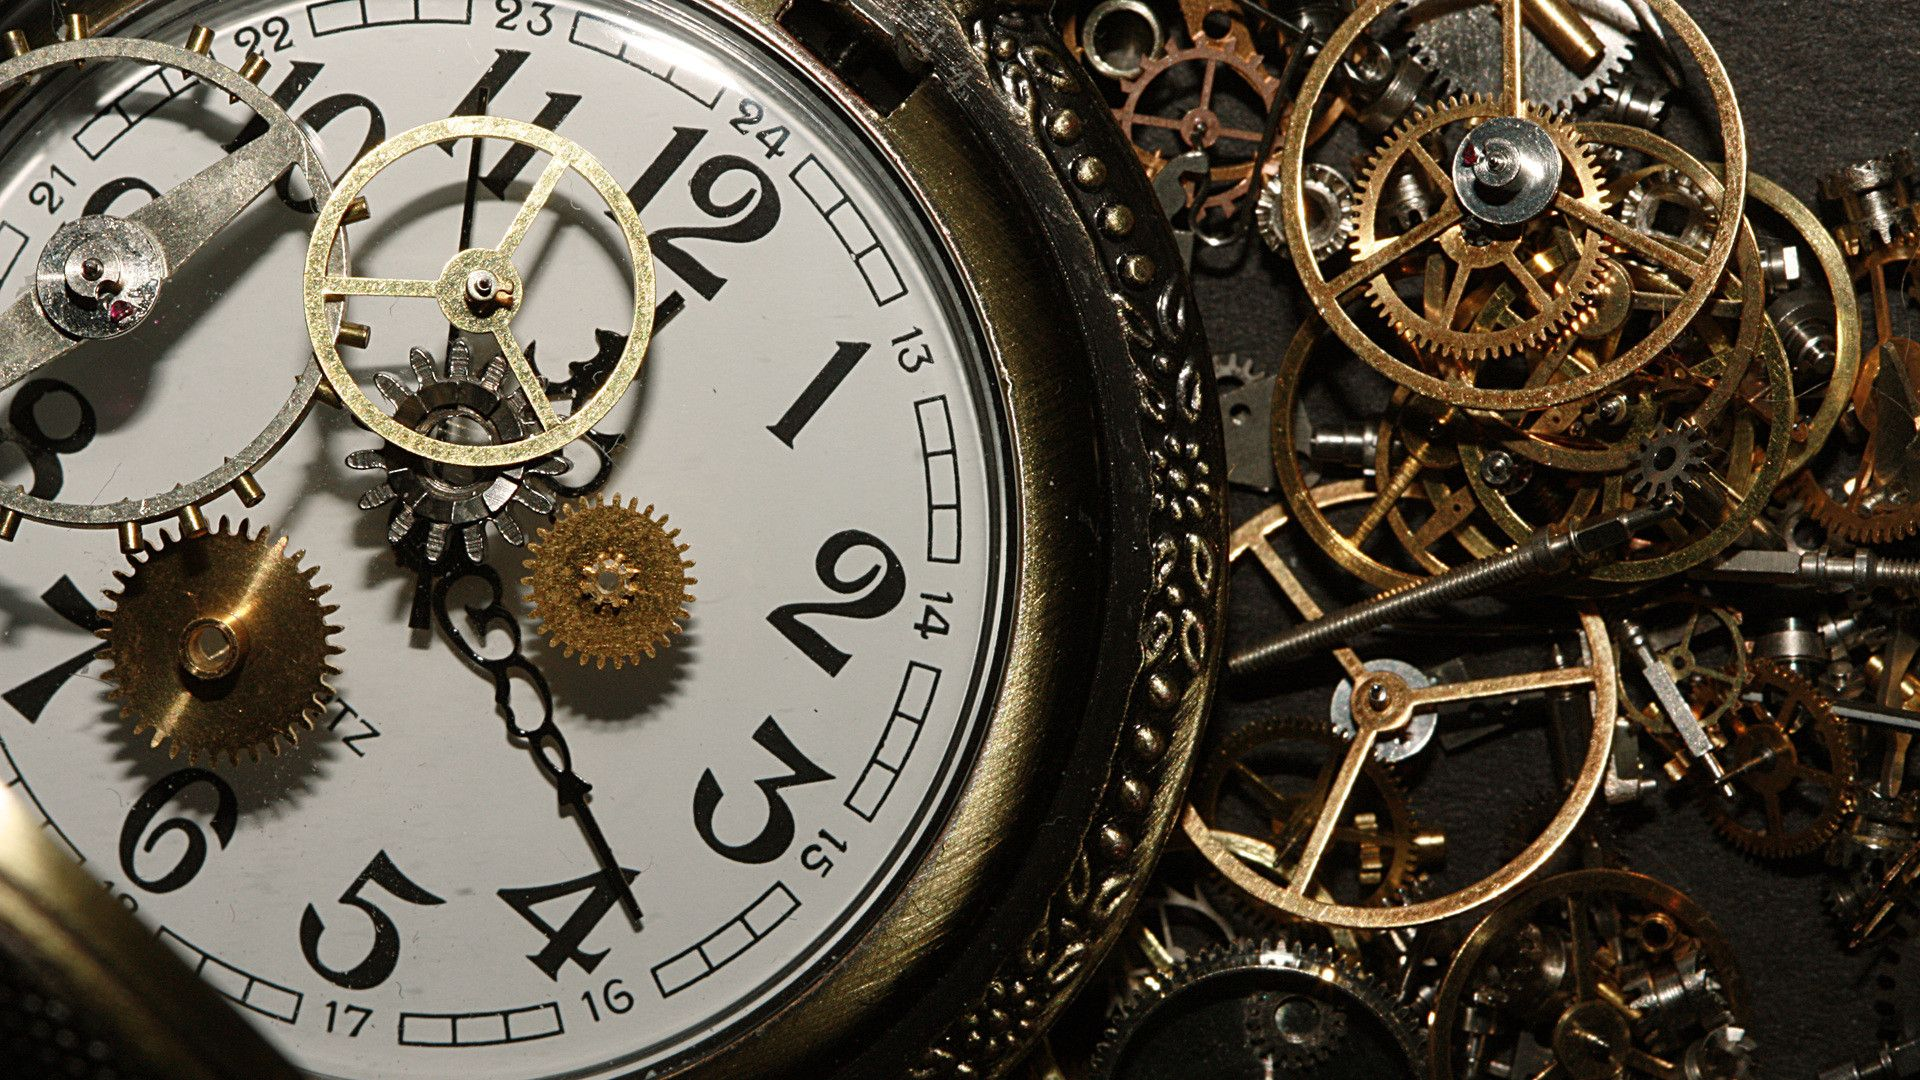 1920x1080 Mechanical Engineering Wallpapers Hd Wallpapersafari Close Up Faces Clock Watches